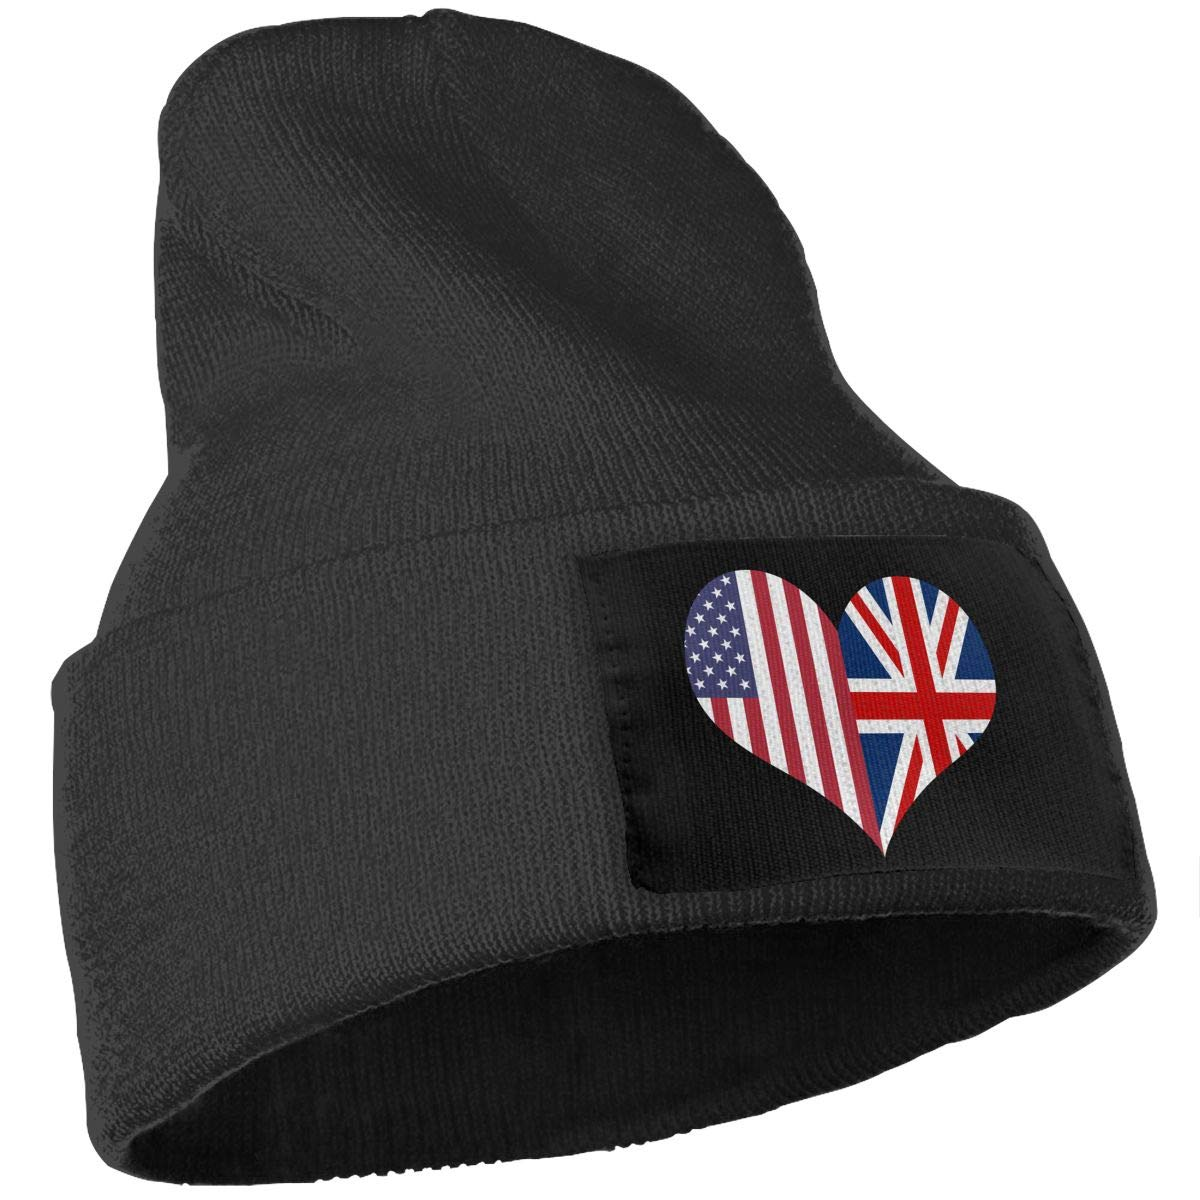 COLLJL-8 Men//Women British American Flag Heart Outdoor Stretch Knit Beanies Hat Soft Winter Skull Caps